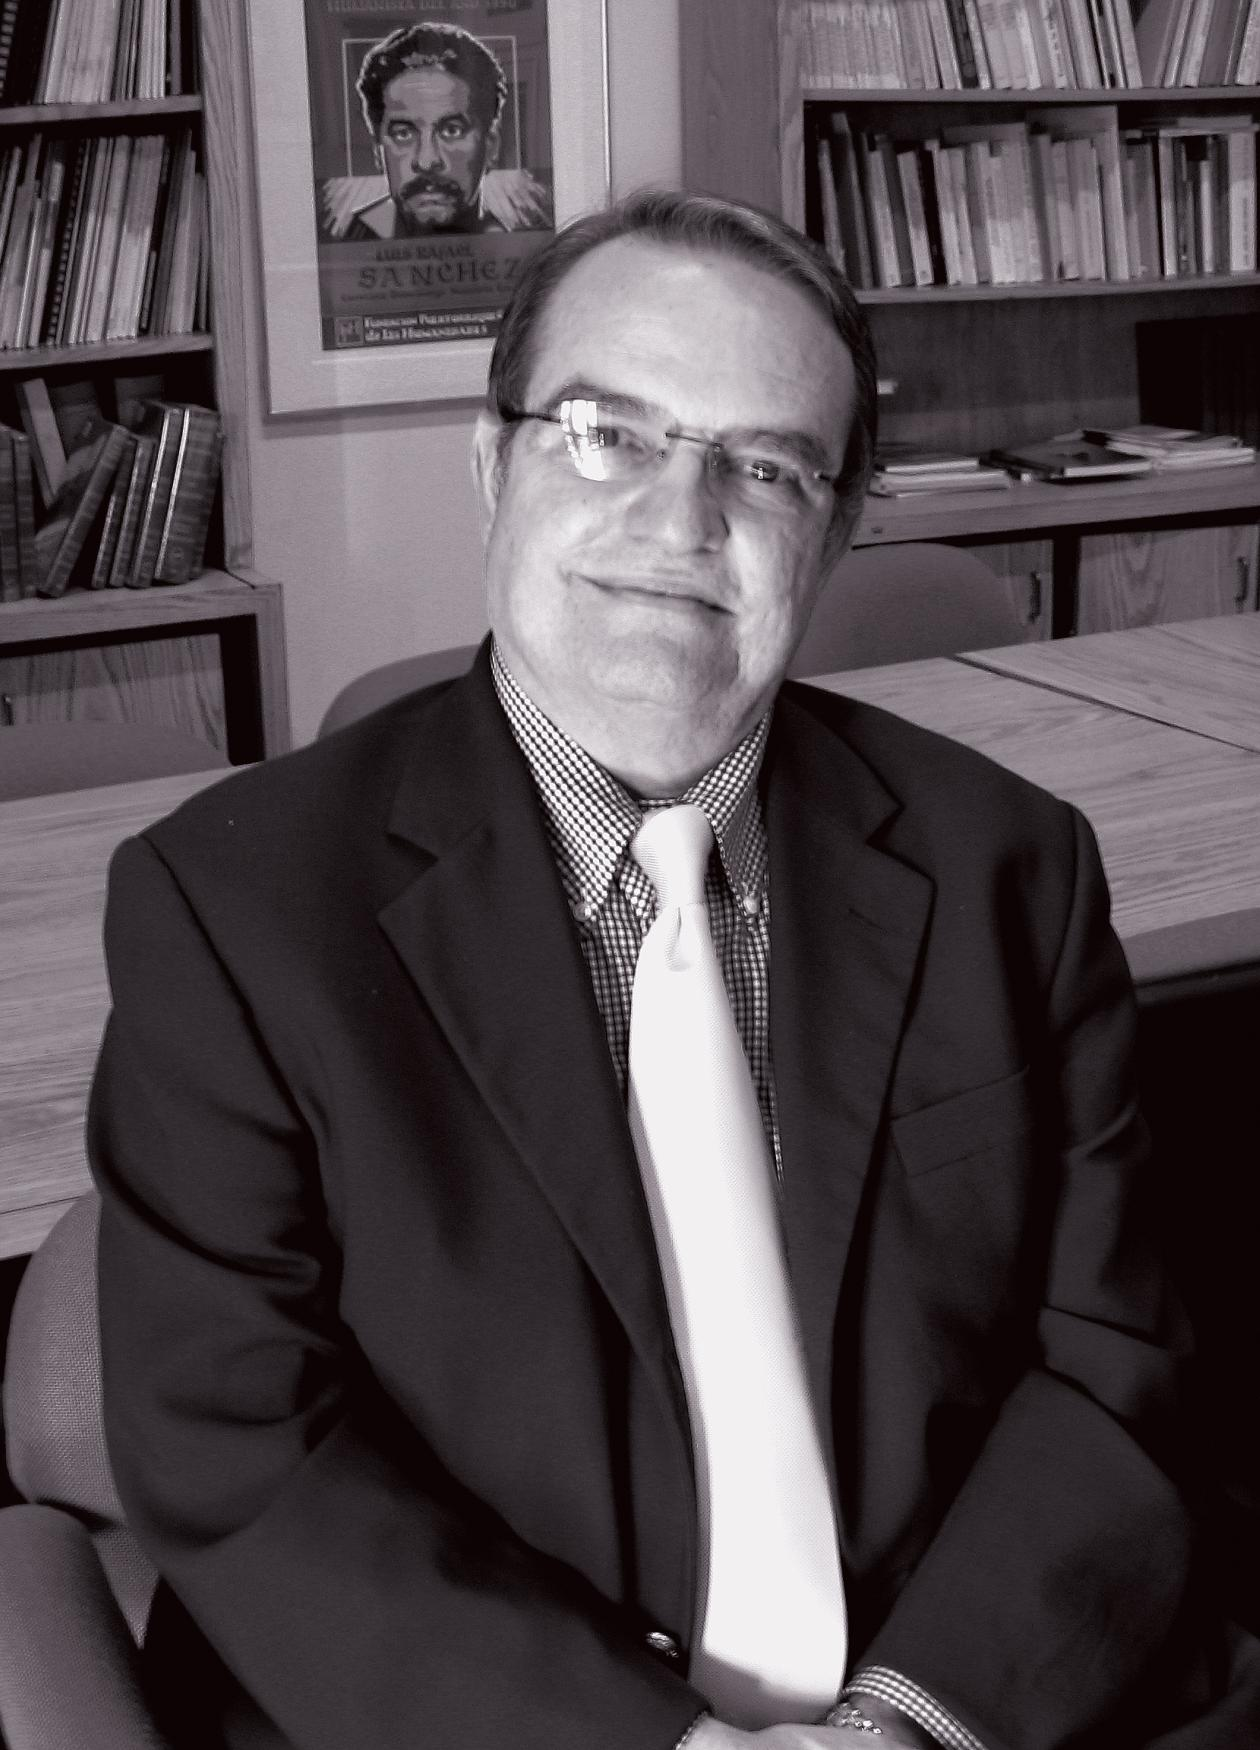 black and white photo of a man in a suit with glasses